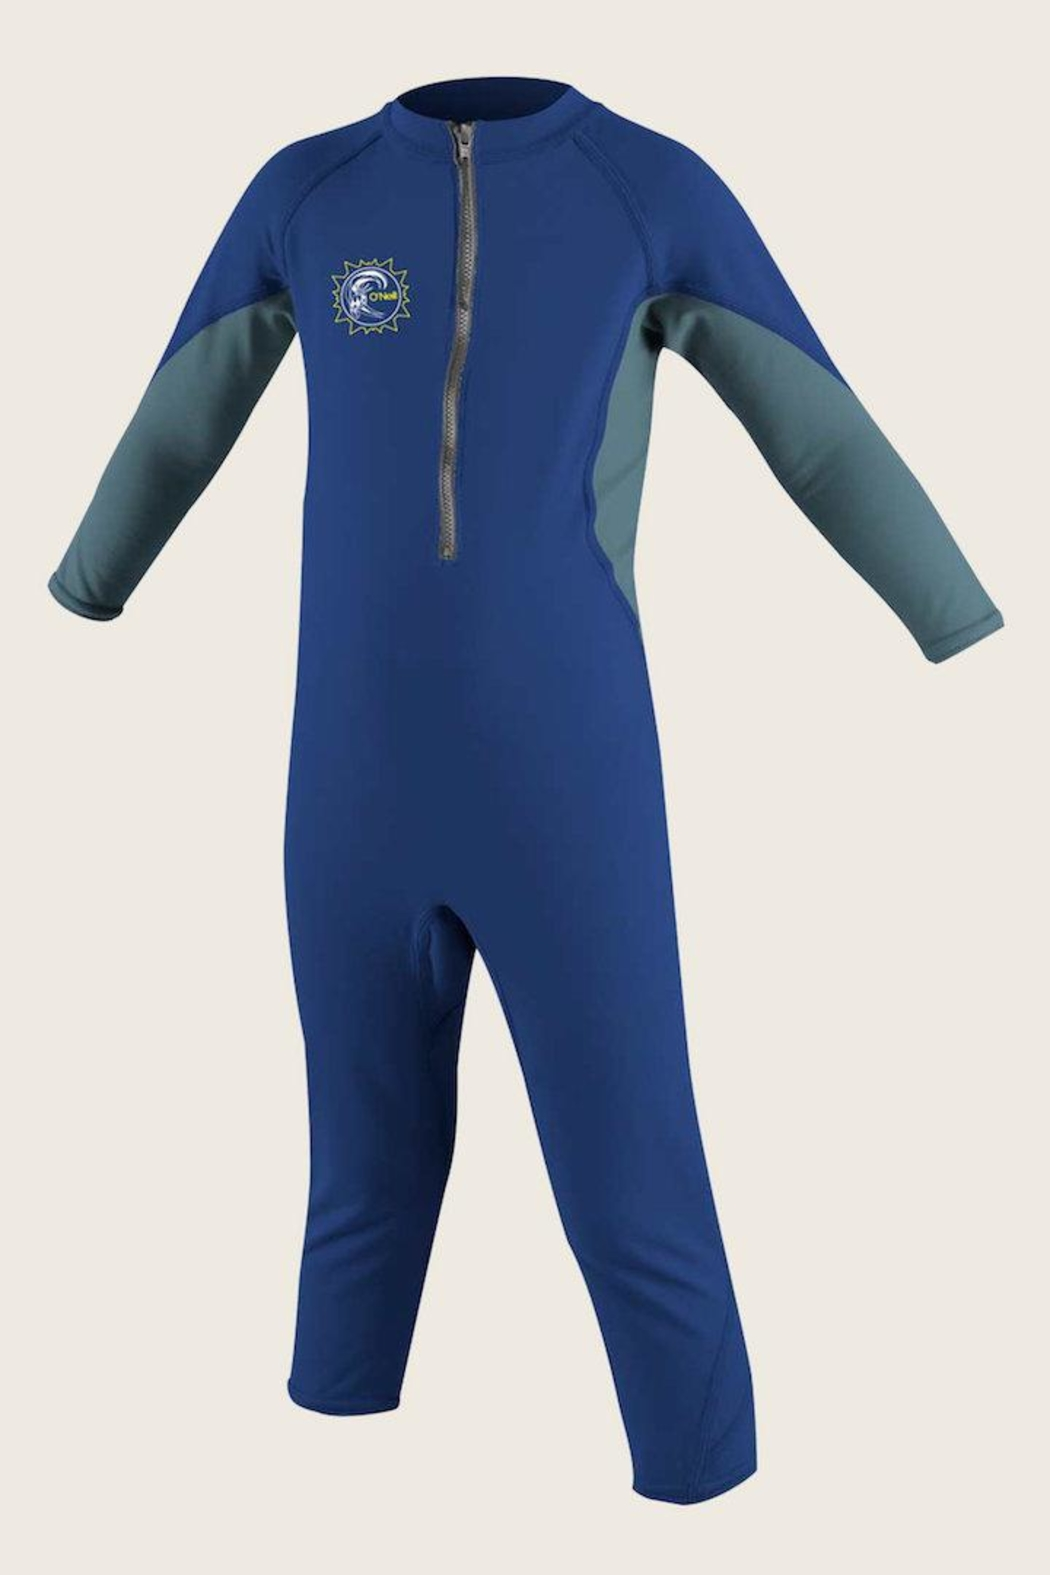 O'Neill Toddler Uv Suit - Main Image